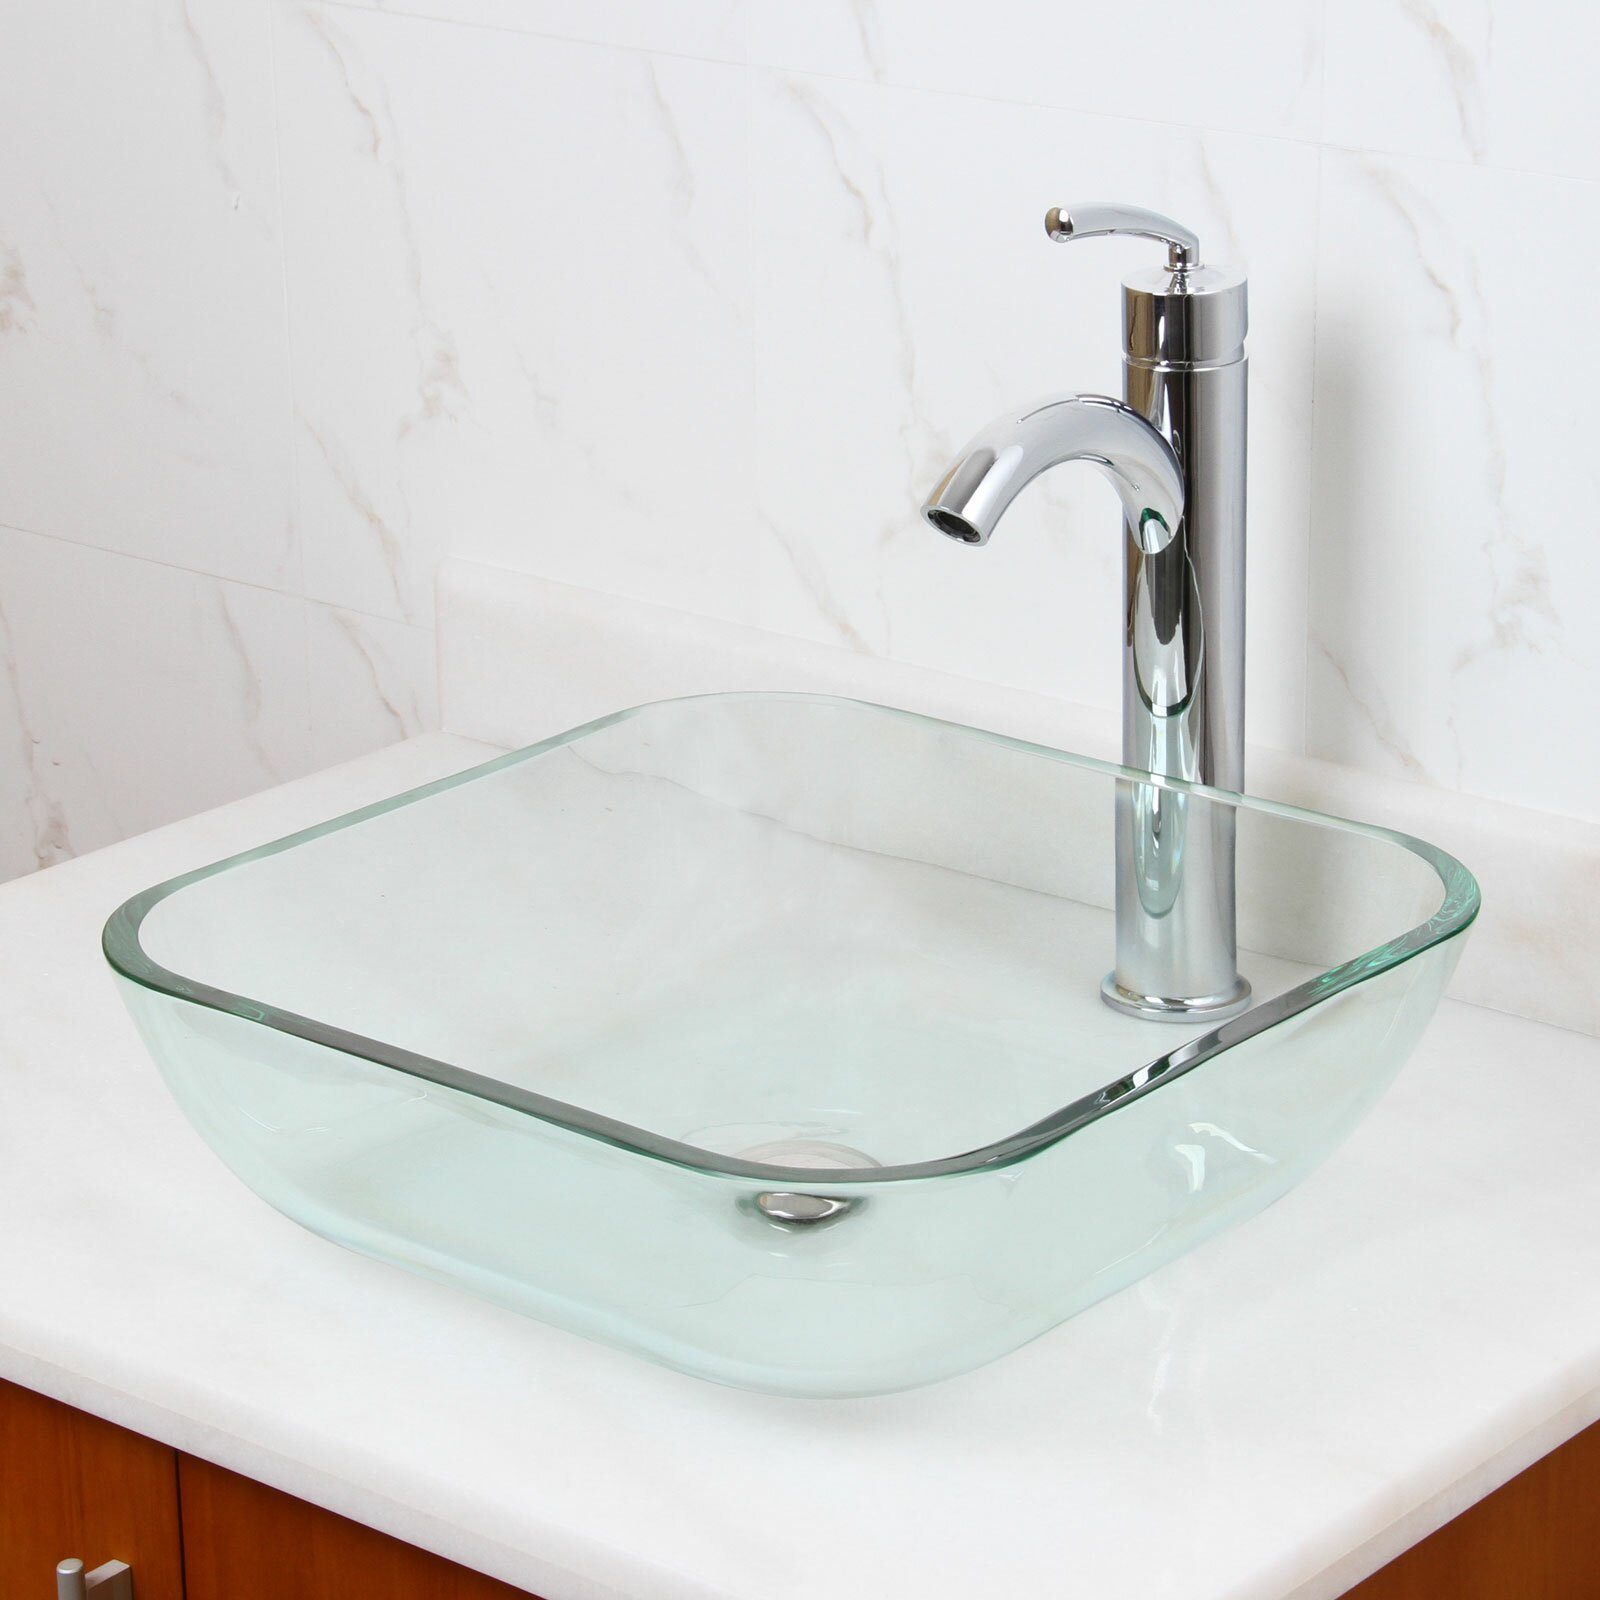 Square Glass Vessel Sink : Elite Transparent Tempered Square Glass Vessel Bathroom Sink Wayfair